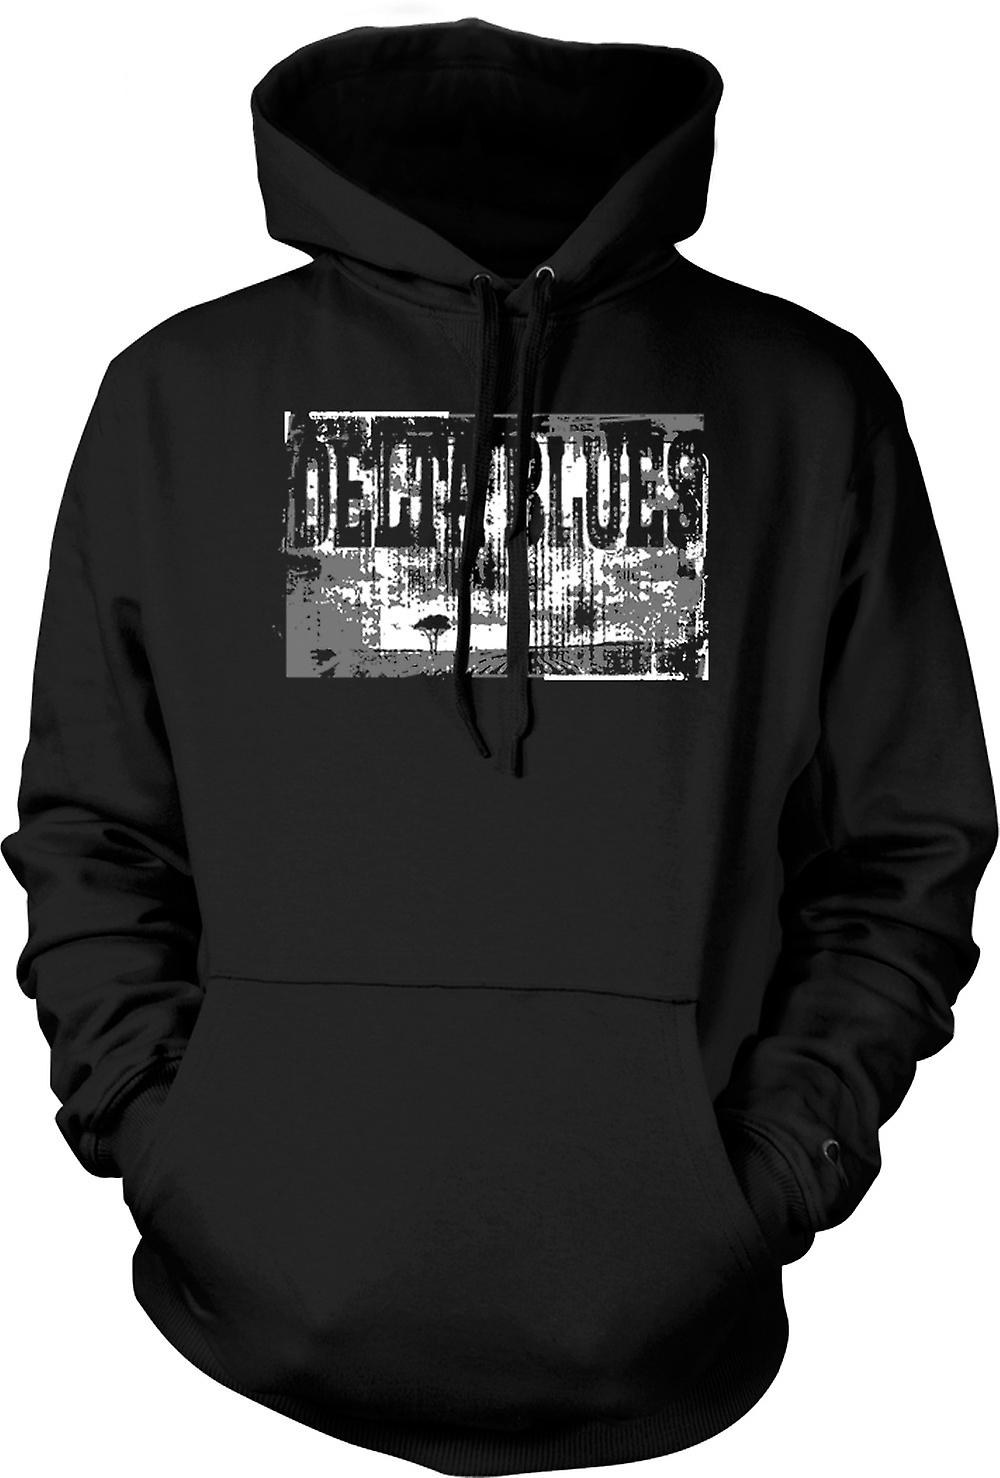 Mens-Hoodie - Delta-Blues-Gitarre - Rock-Musik